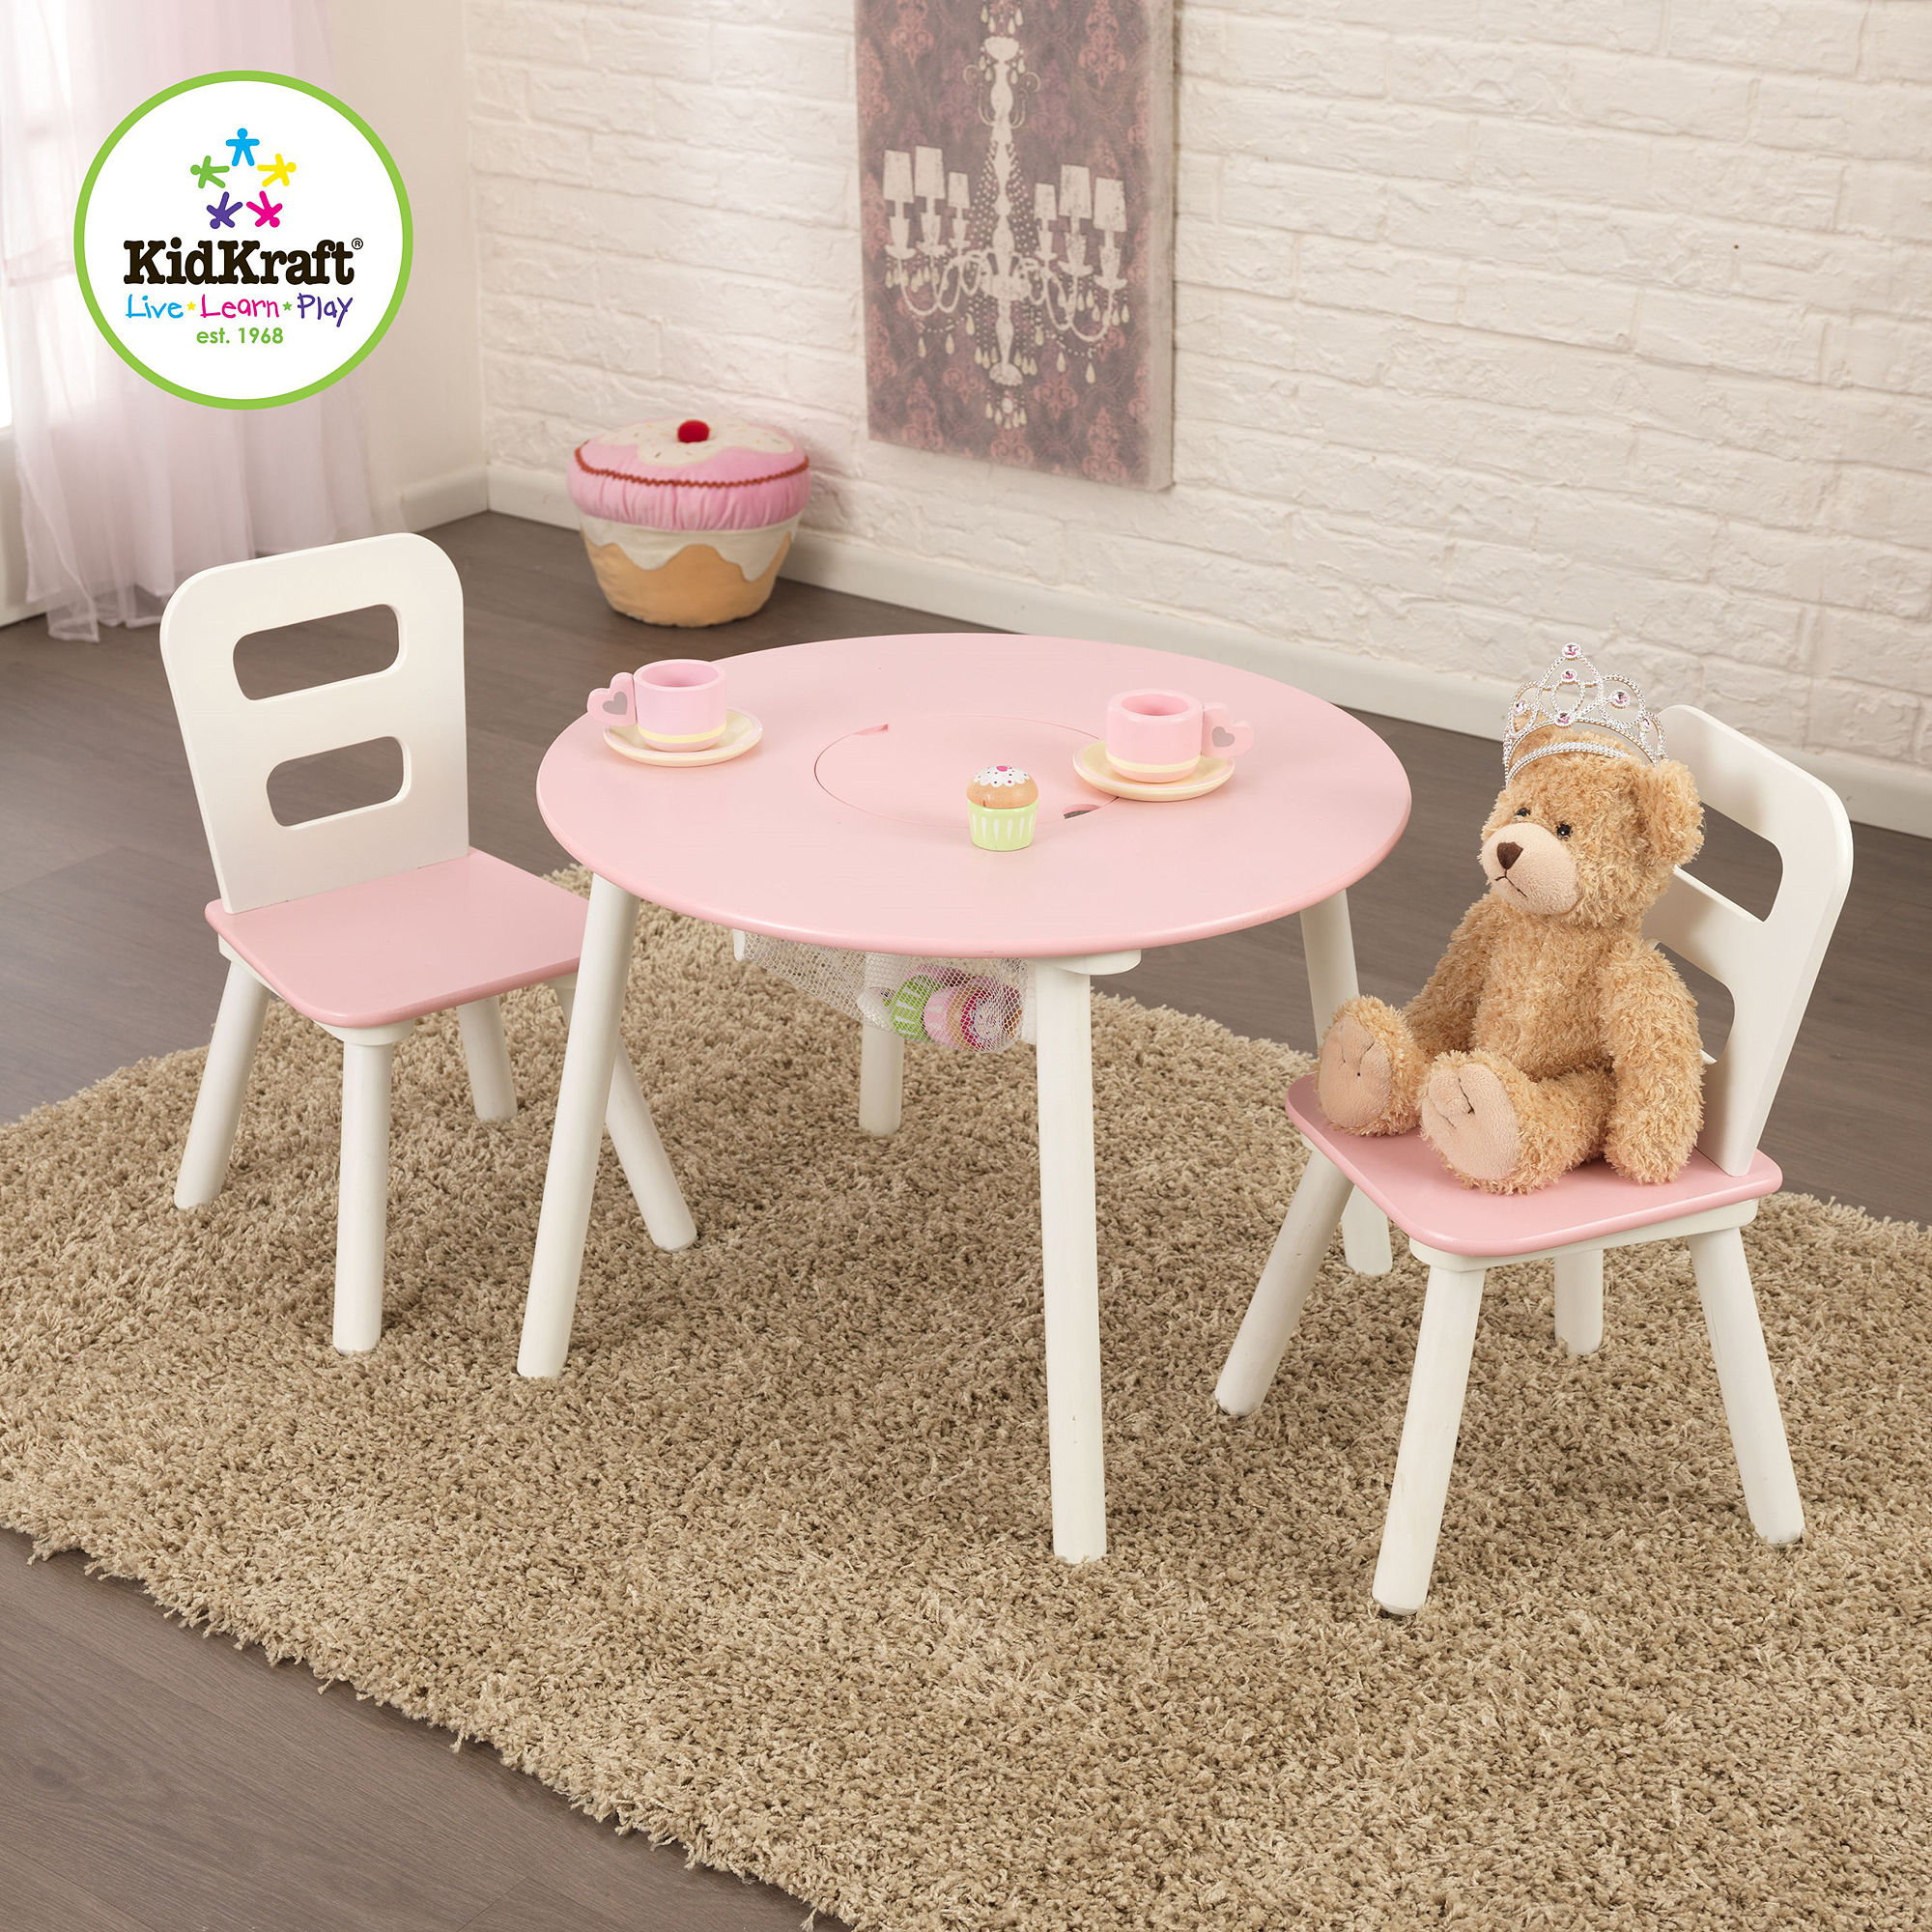 KidKraft Round Storage Table and 2 Chairs Set, White/Pink